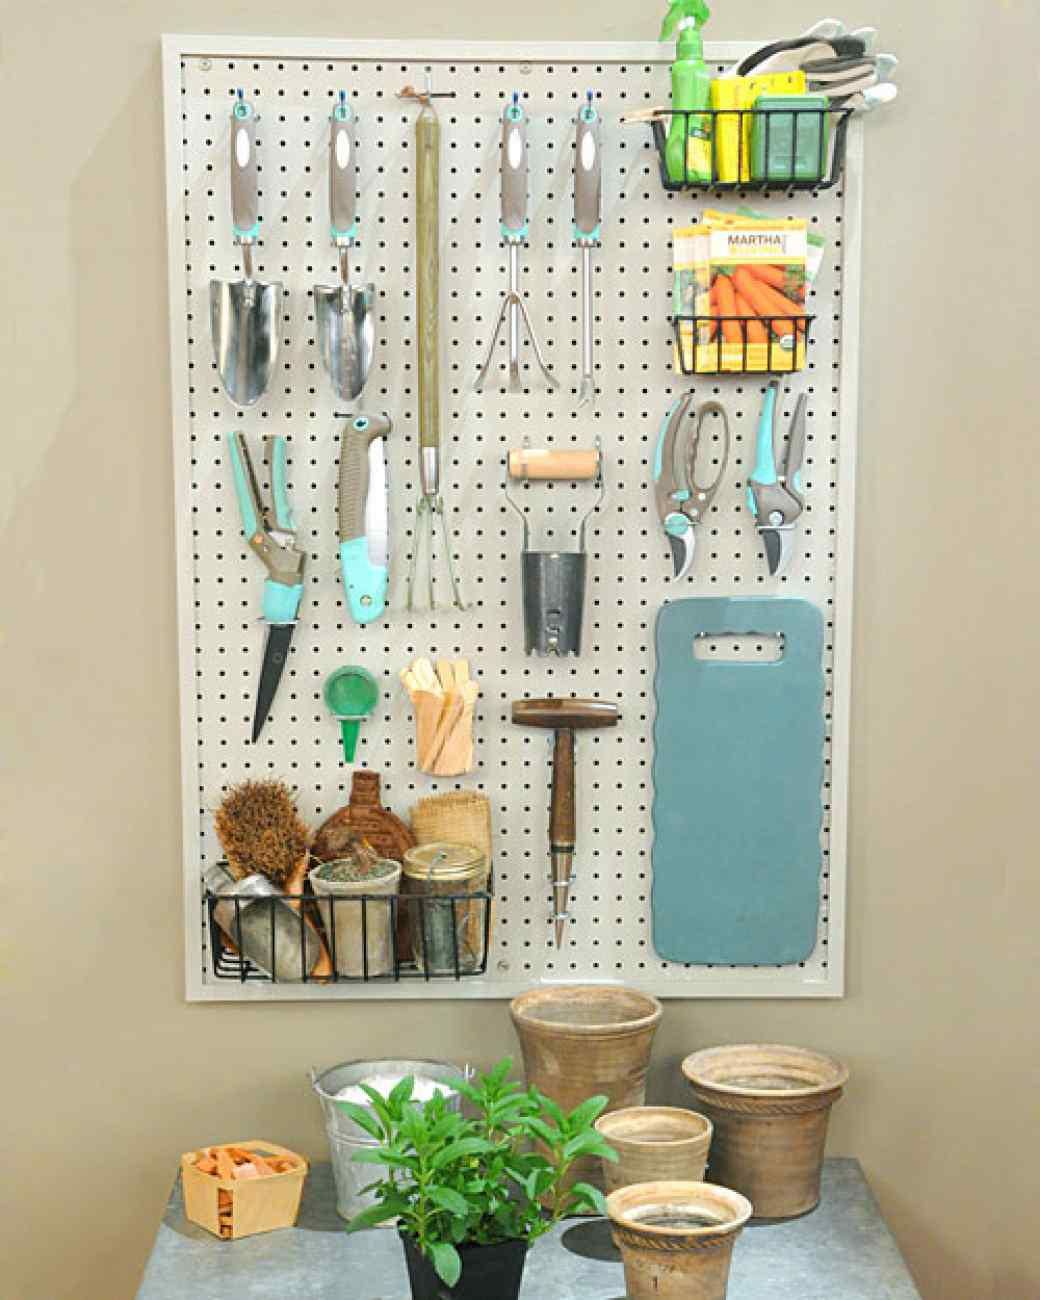 6143_042611_pegboard_craft_hd